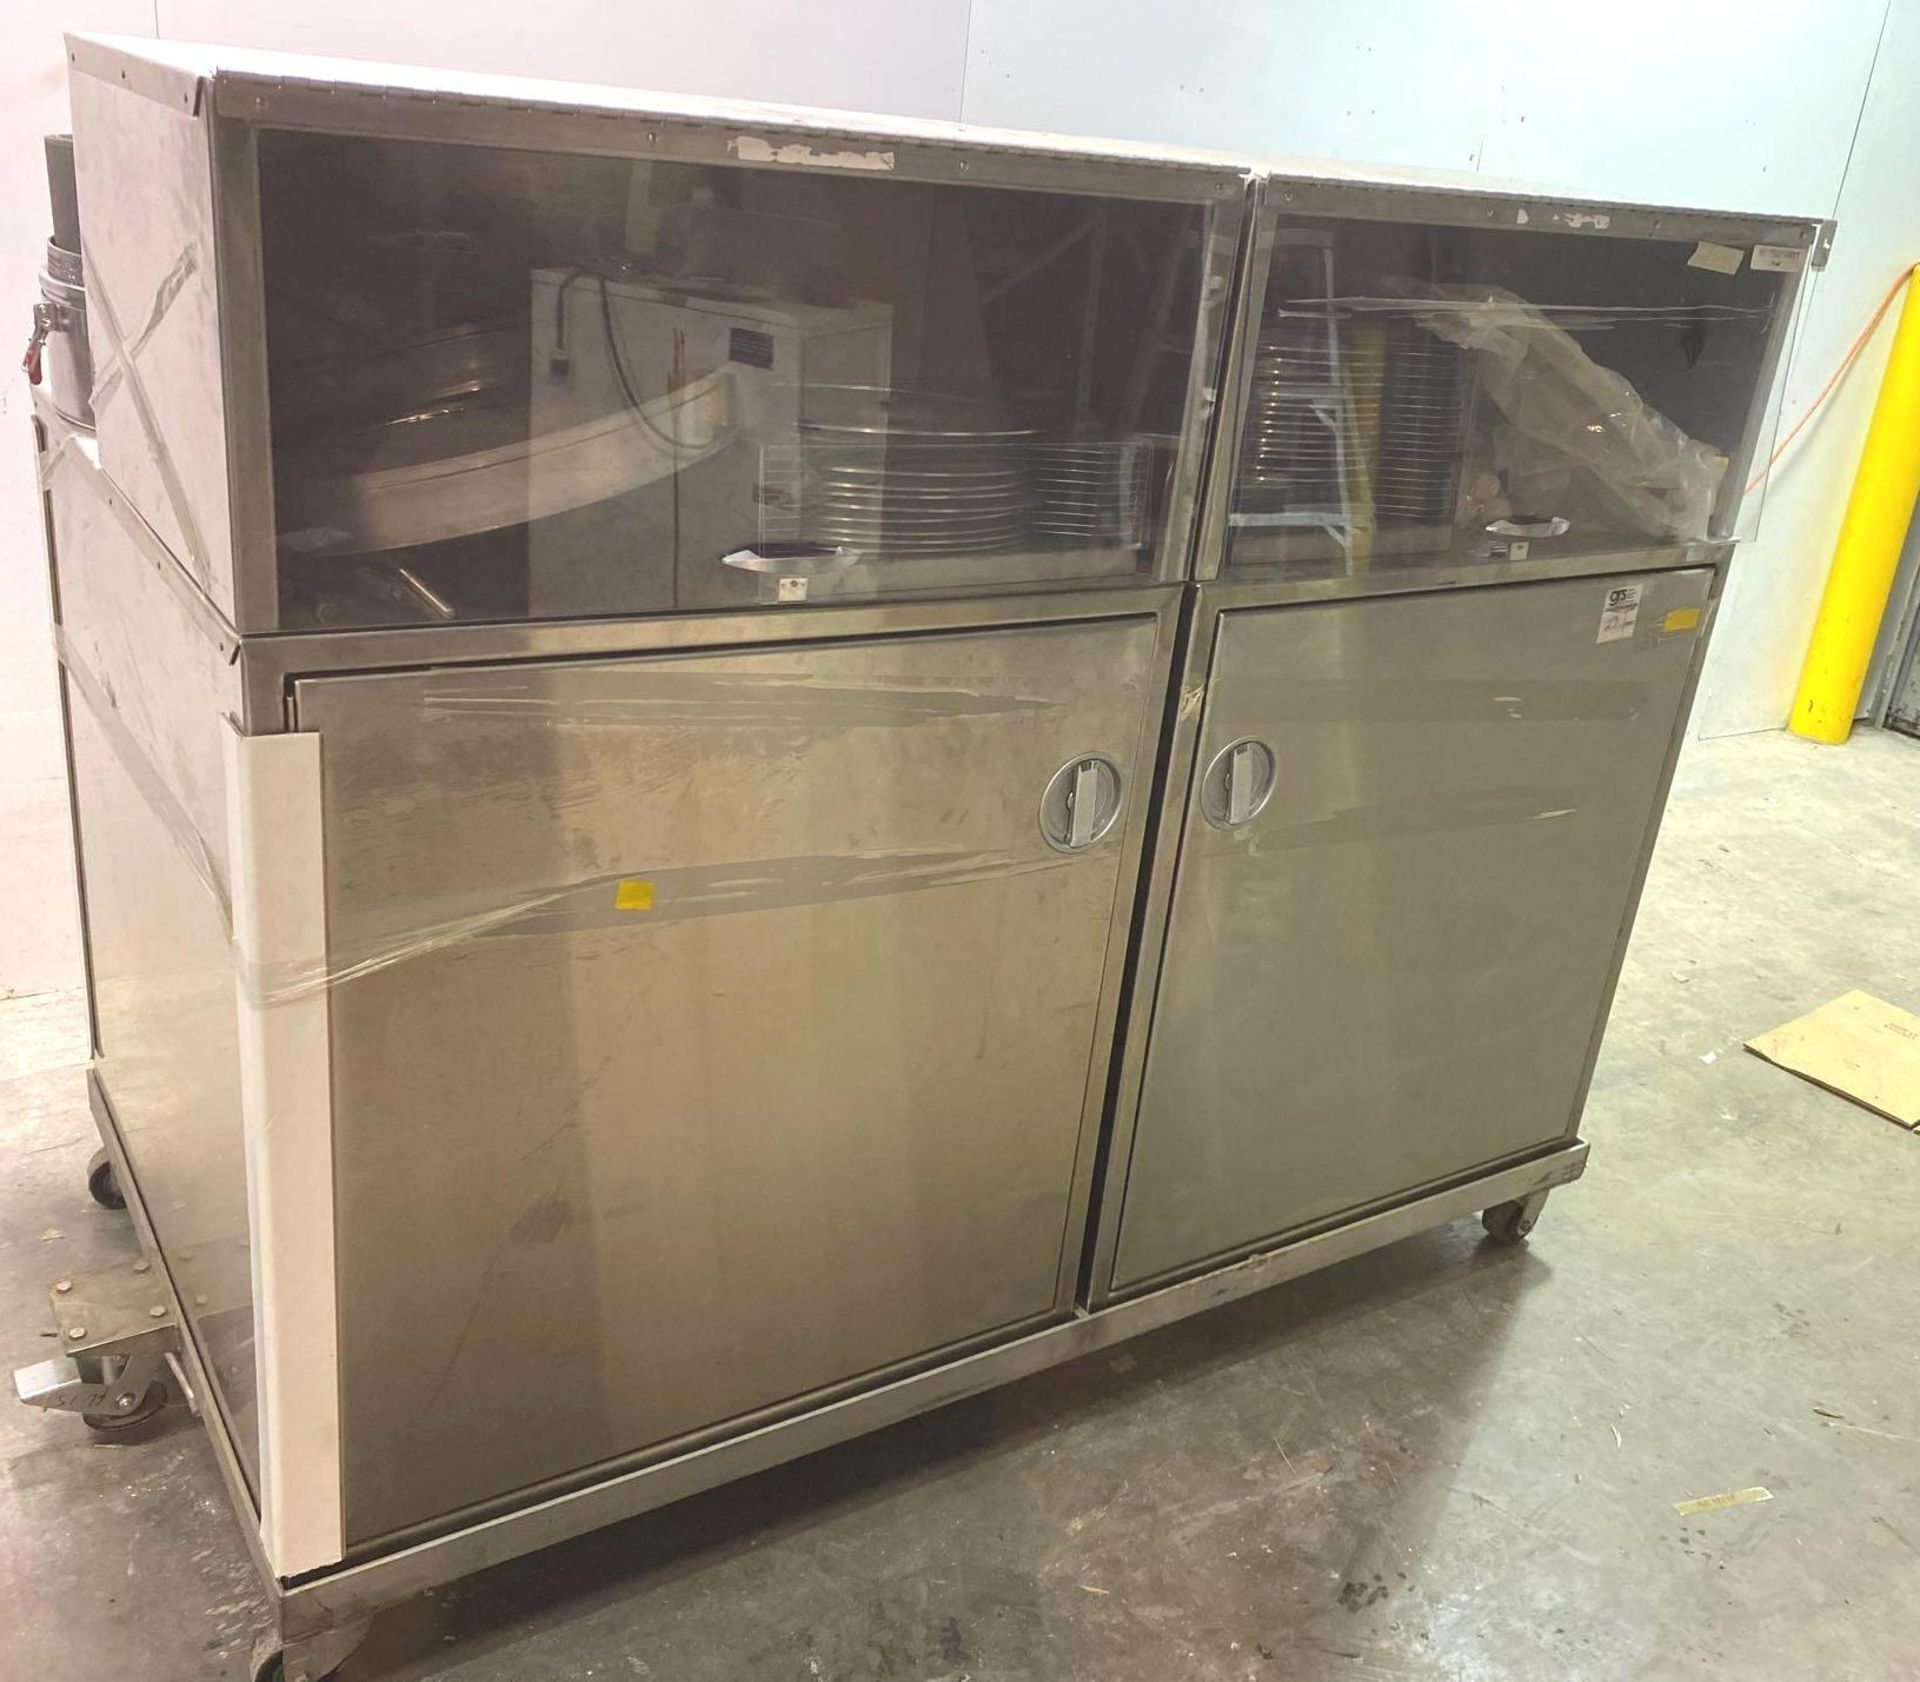 Mobile Stainless Steel Cabinet with Sifter Sieves - Assorted Sizes - Image 2 of 13